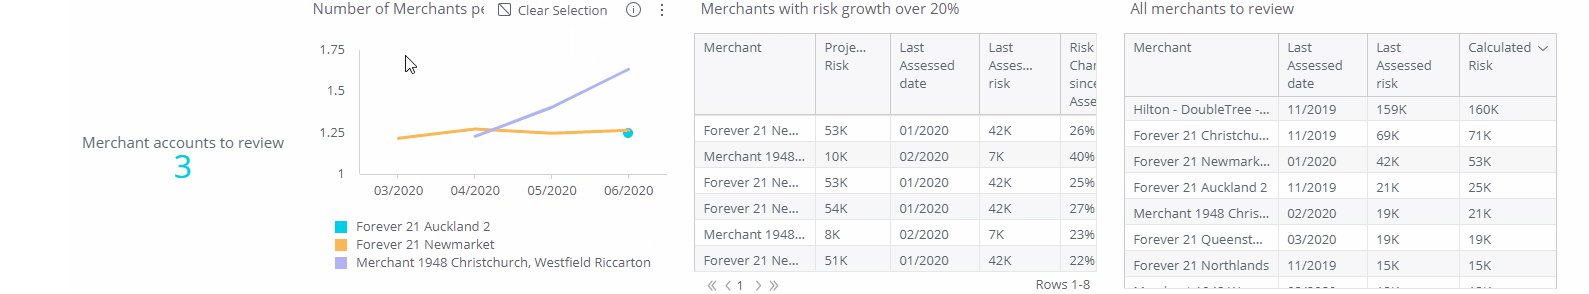 Merchants with Risk Growth Over 20% Since the Assesment